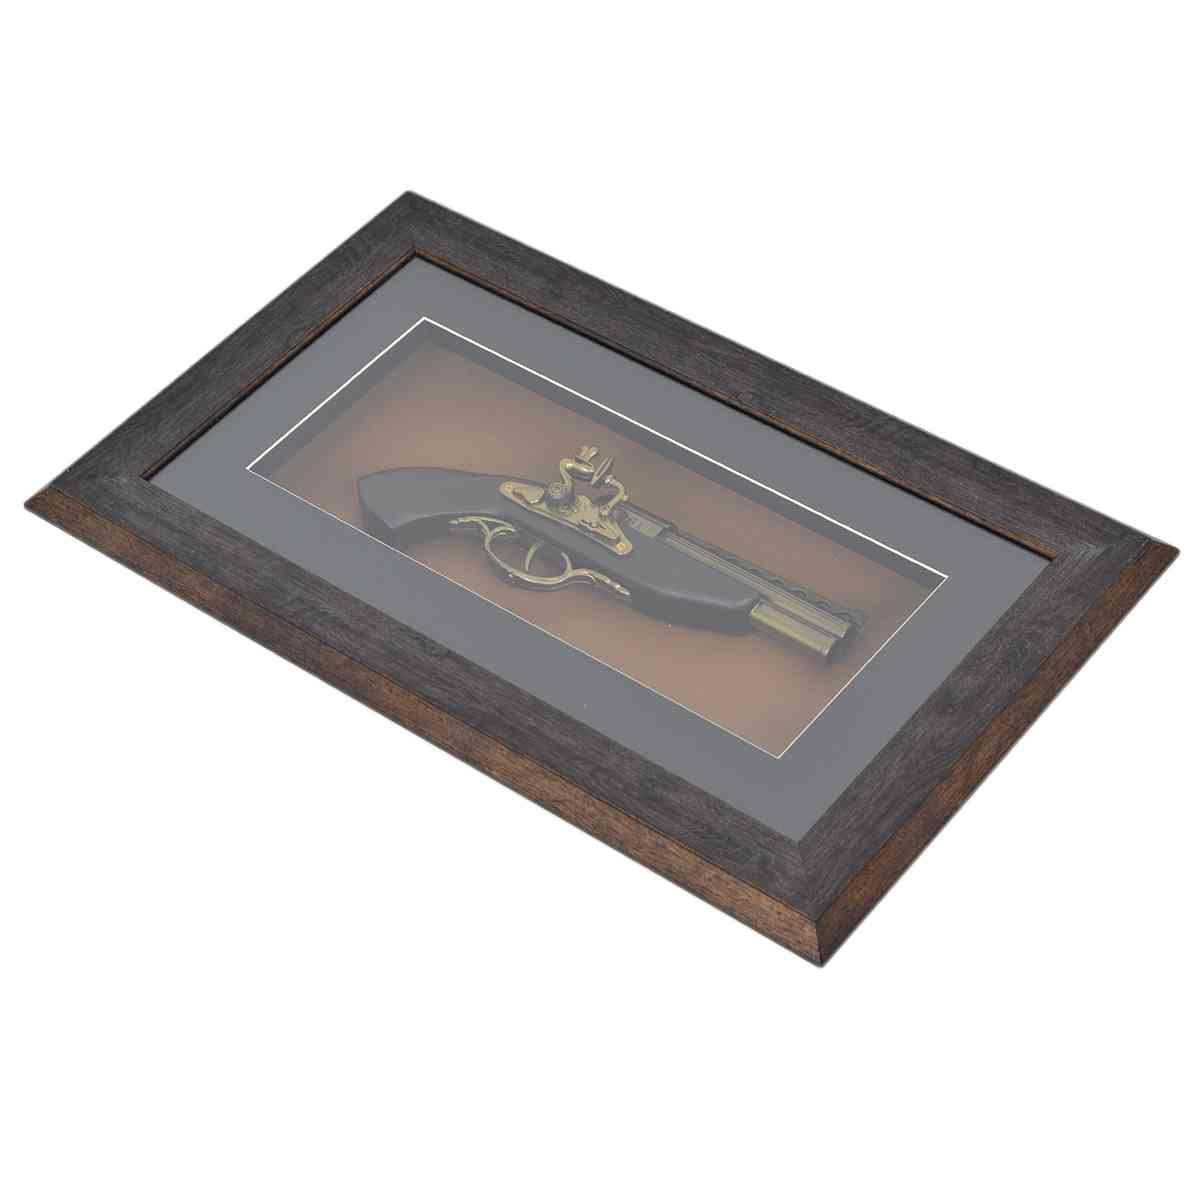 Asaan Buy 3D Object Frame (25 Inch Width x 13 Inch Height x 3 Inch Depth)